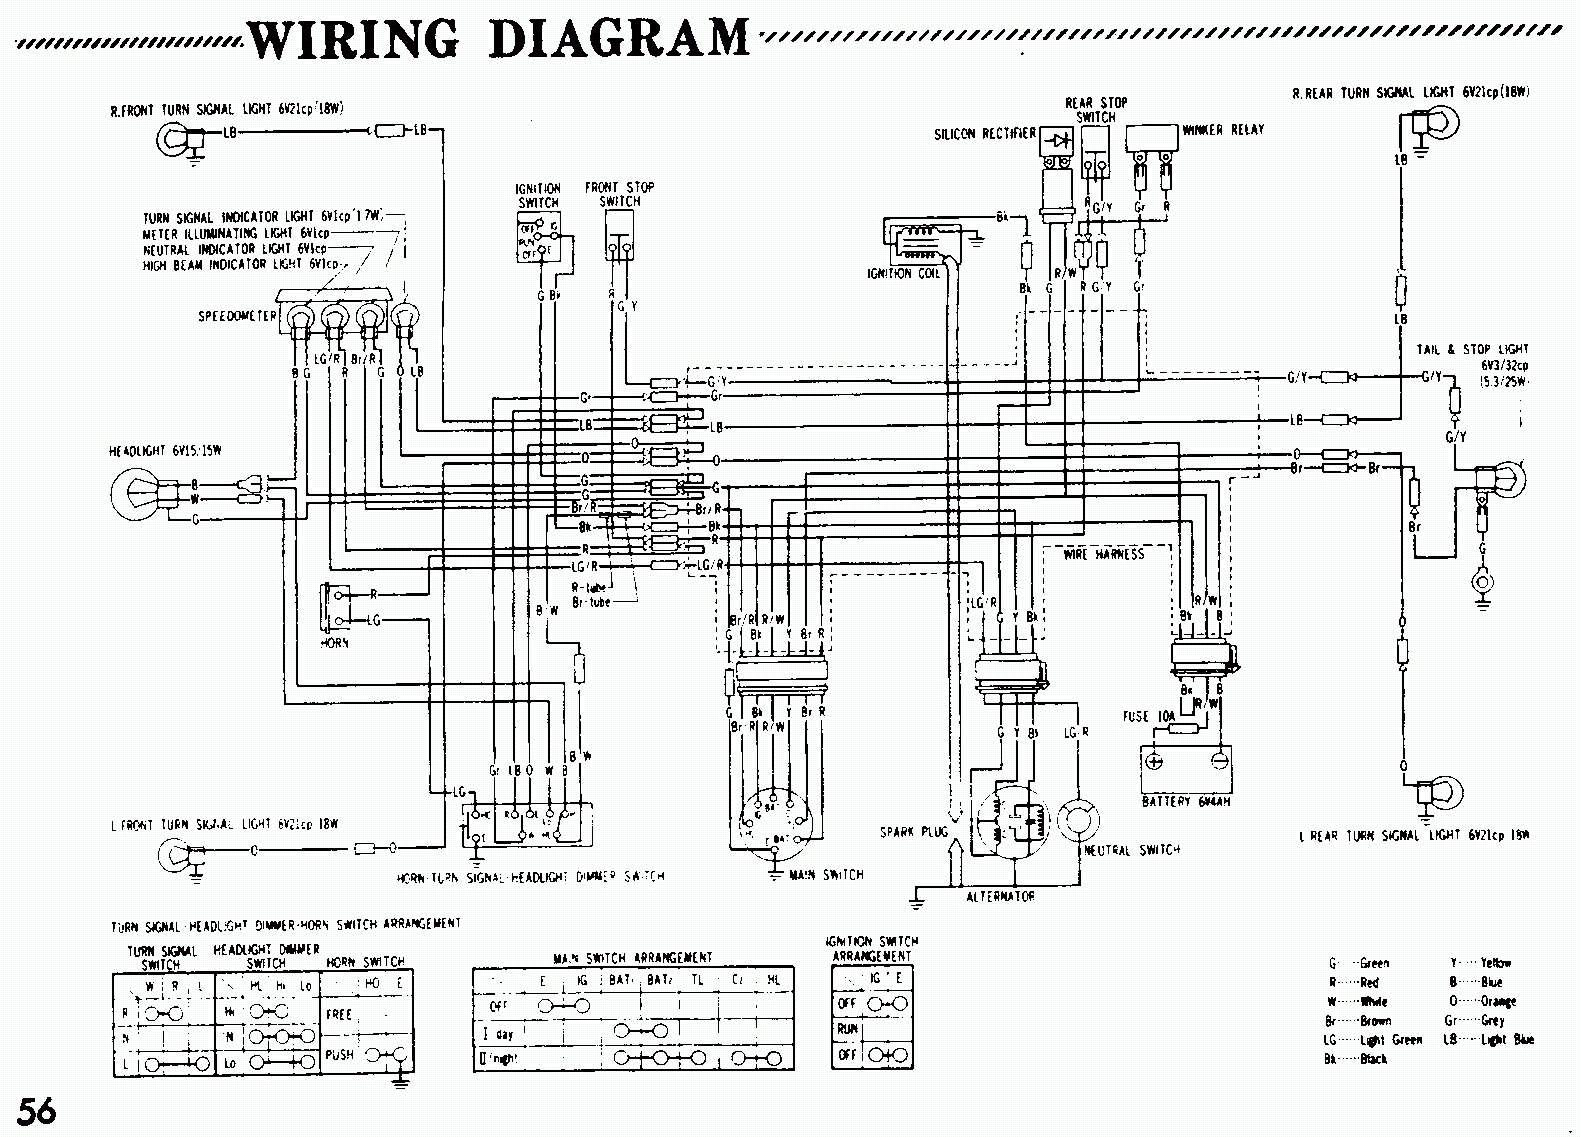 Ssr 140 Wiring Diagram Schemes For 110 Atv Tbolt Usa Tech Database Llc Rh Tboltusa Com Solid State Motor Starter Control Relay Heat